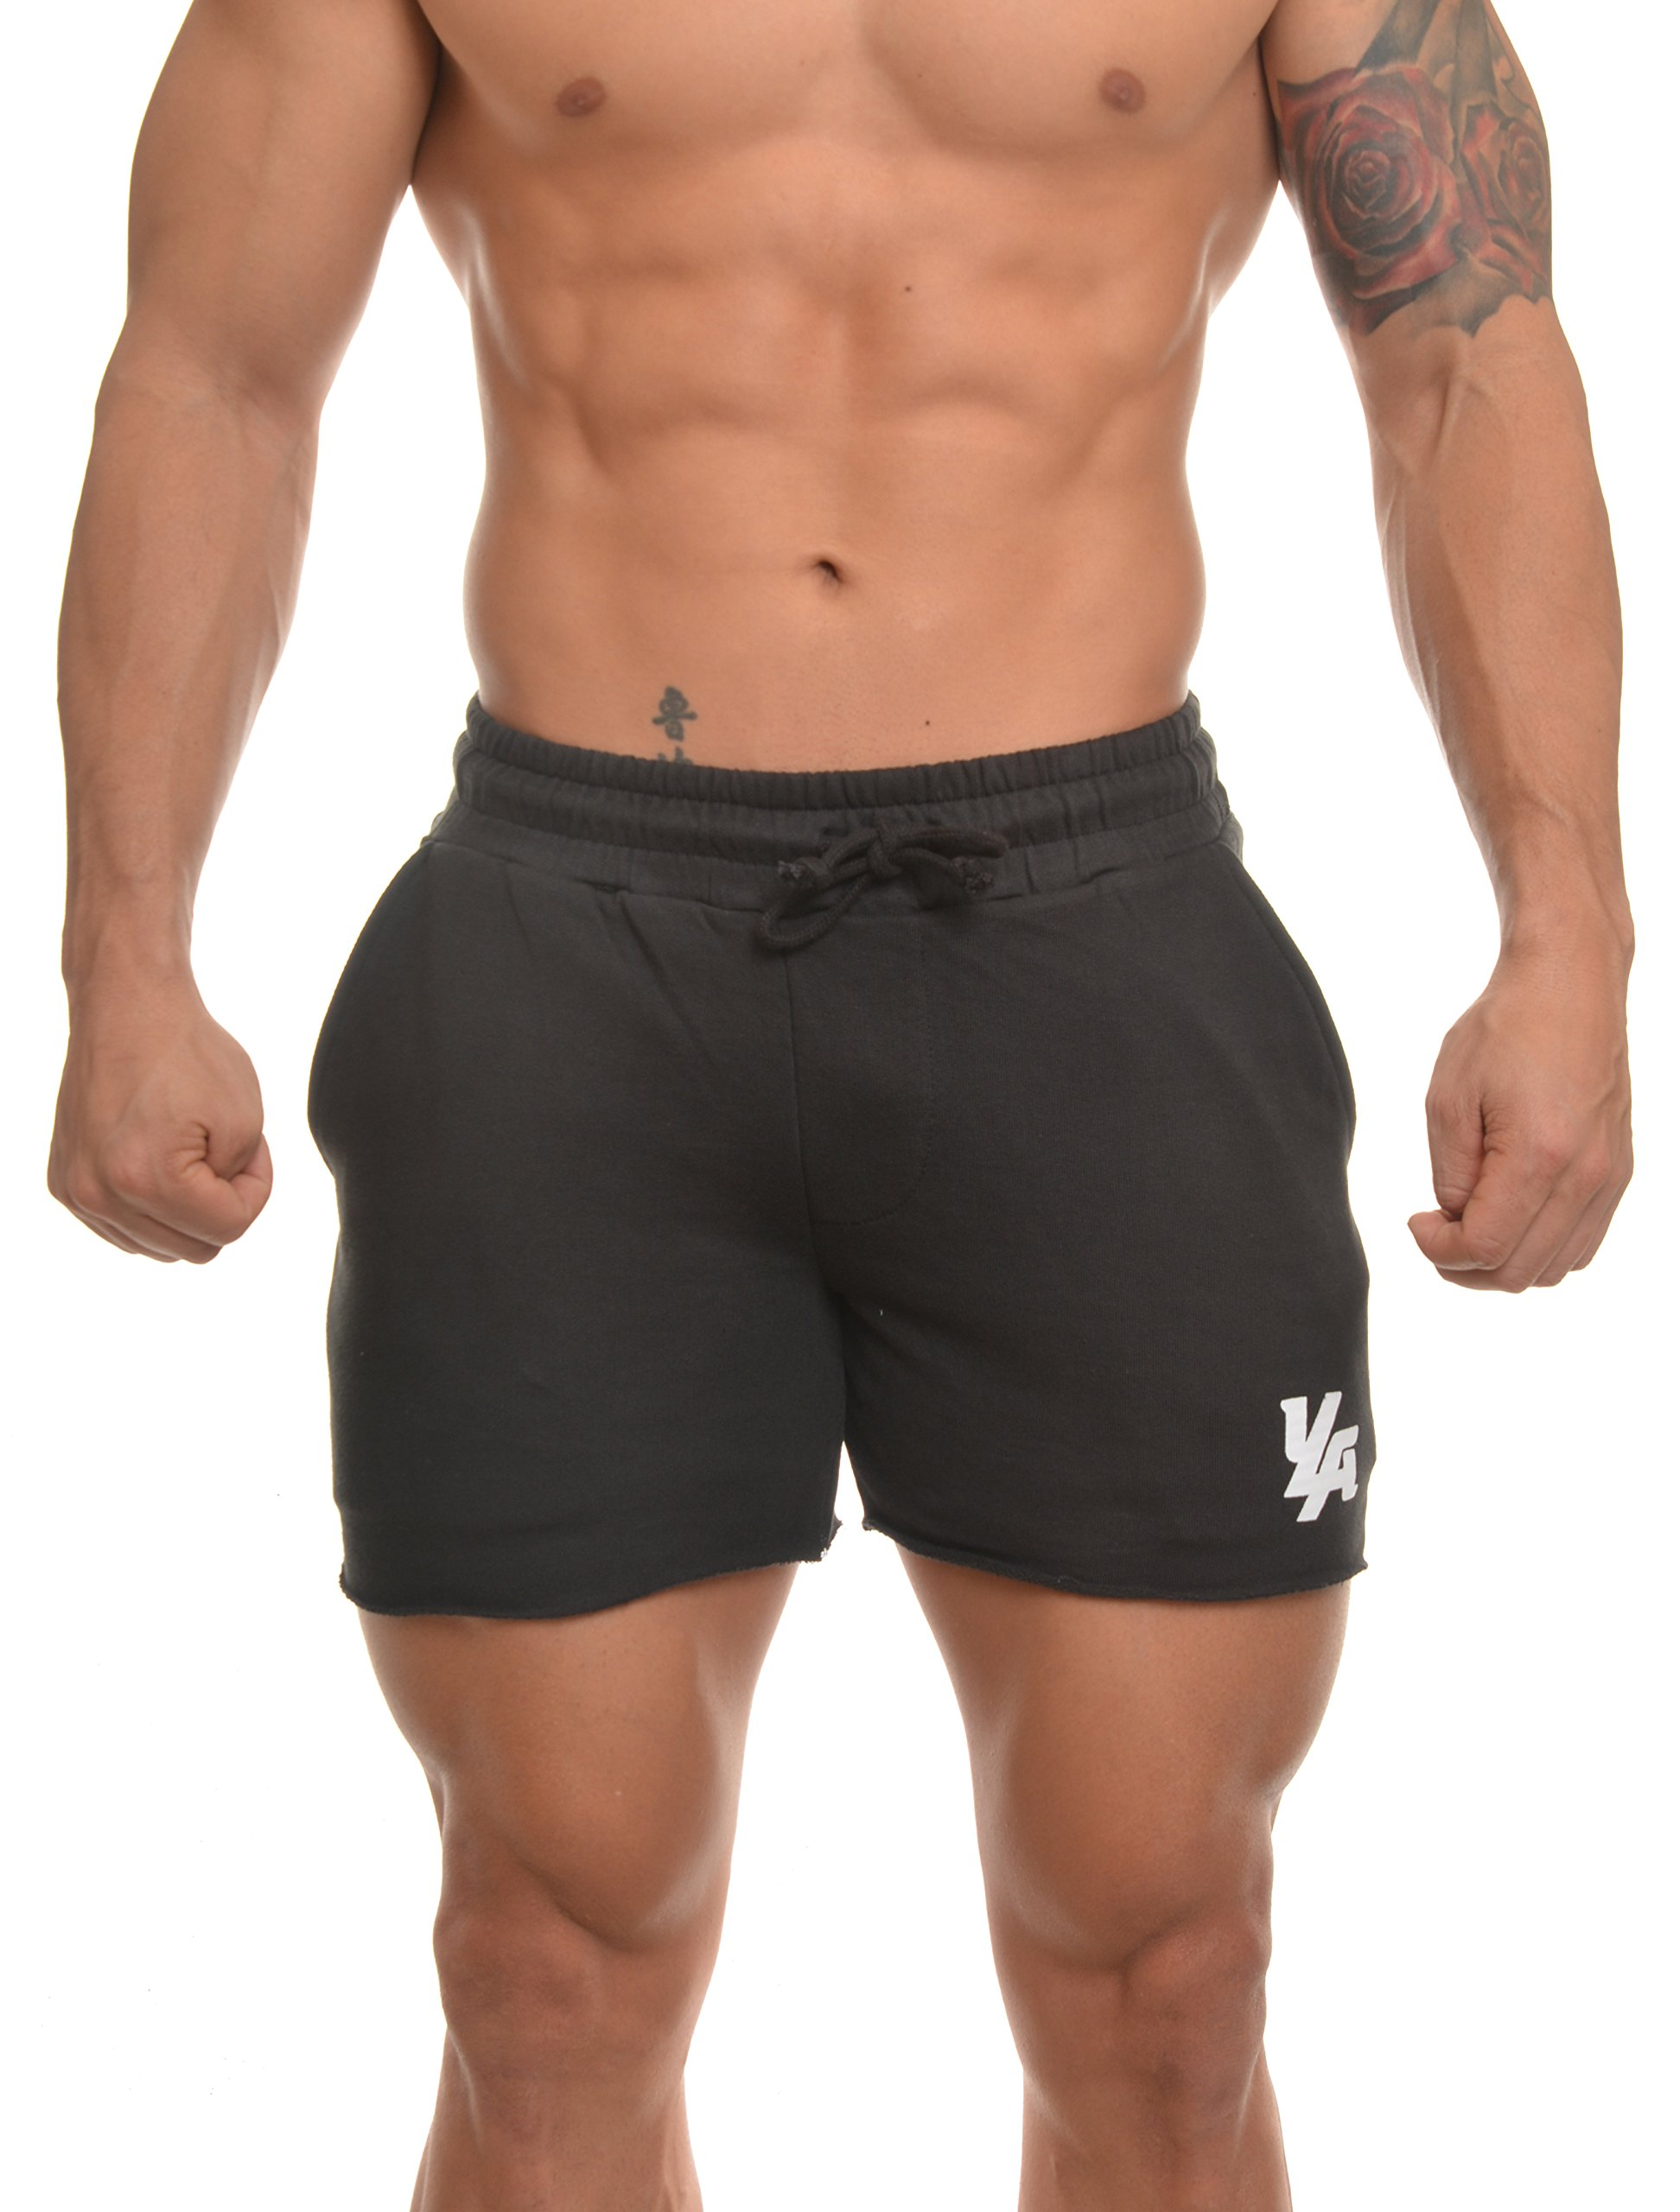 Youngla Men's Bodybuilding Shorts French Terry Solid Gym Running Workout Shorts 102 Black Medium